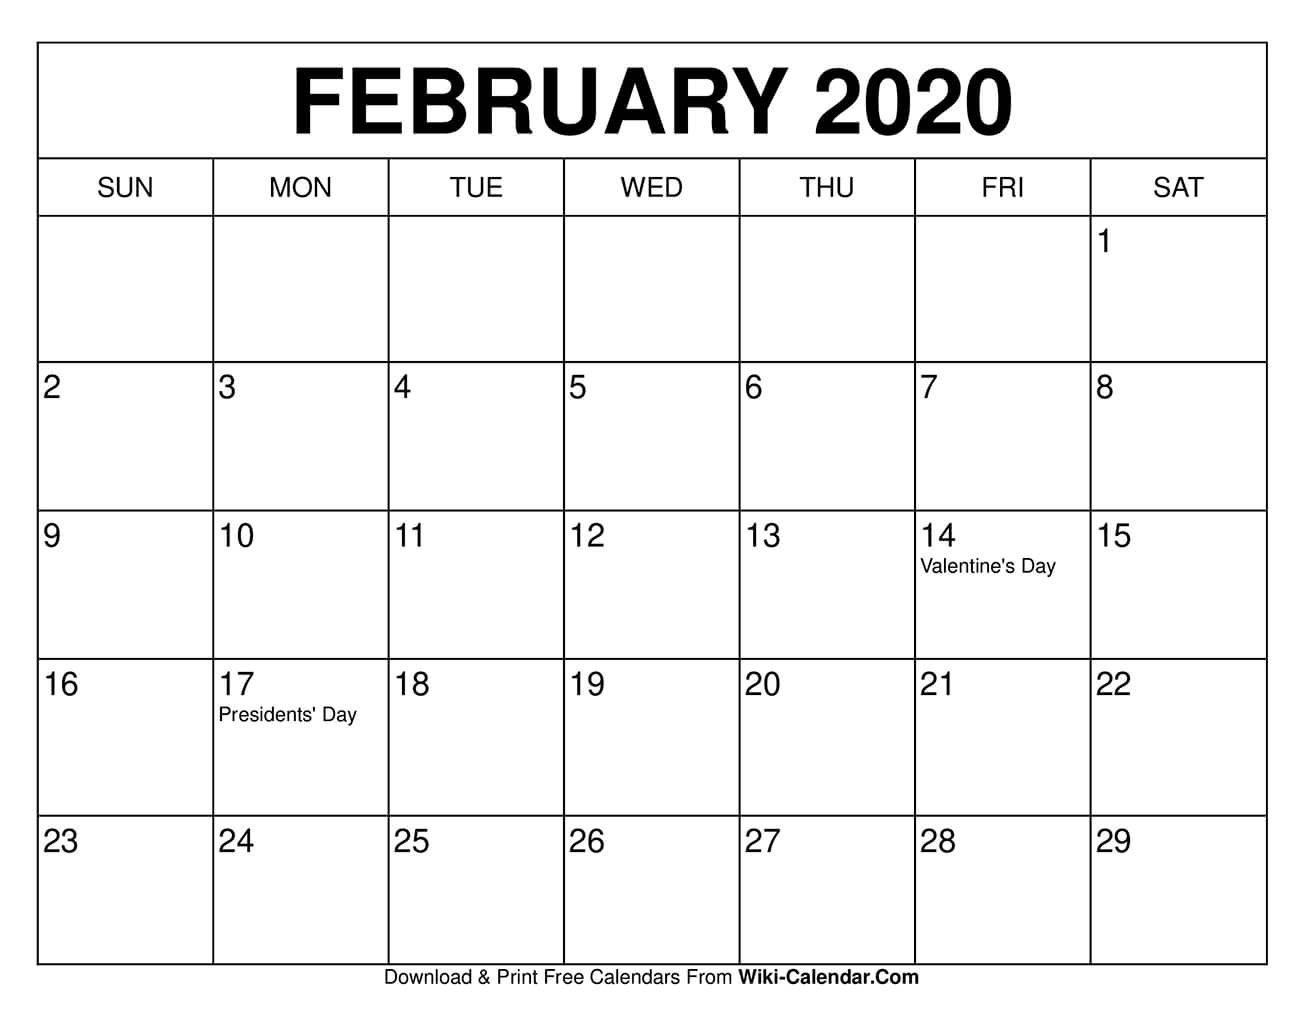 Free Printable February 2020 Calendars Printable Calenders With Date And Time On 8 1/2 X 11 Paper